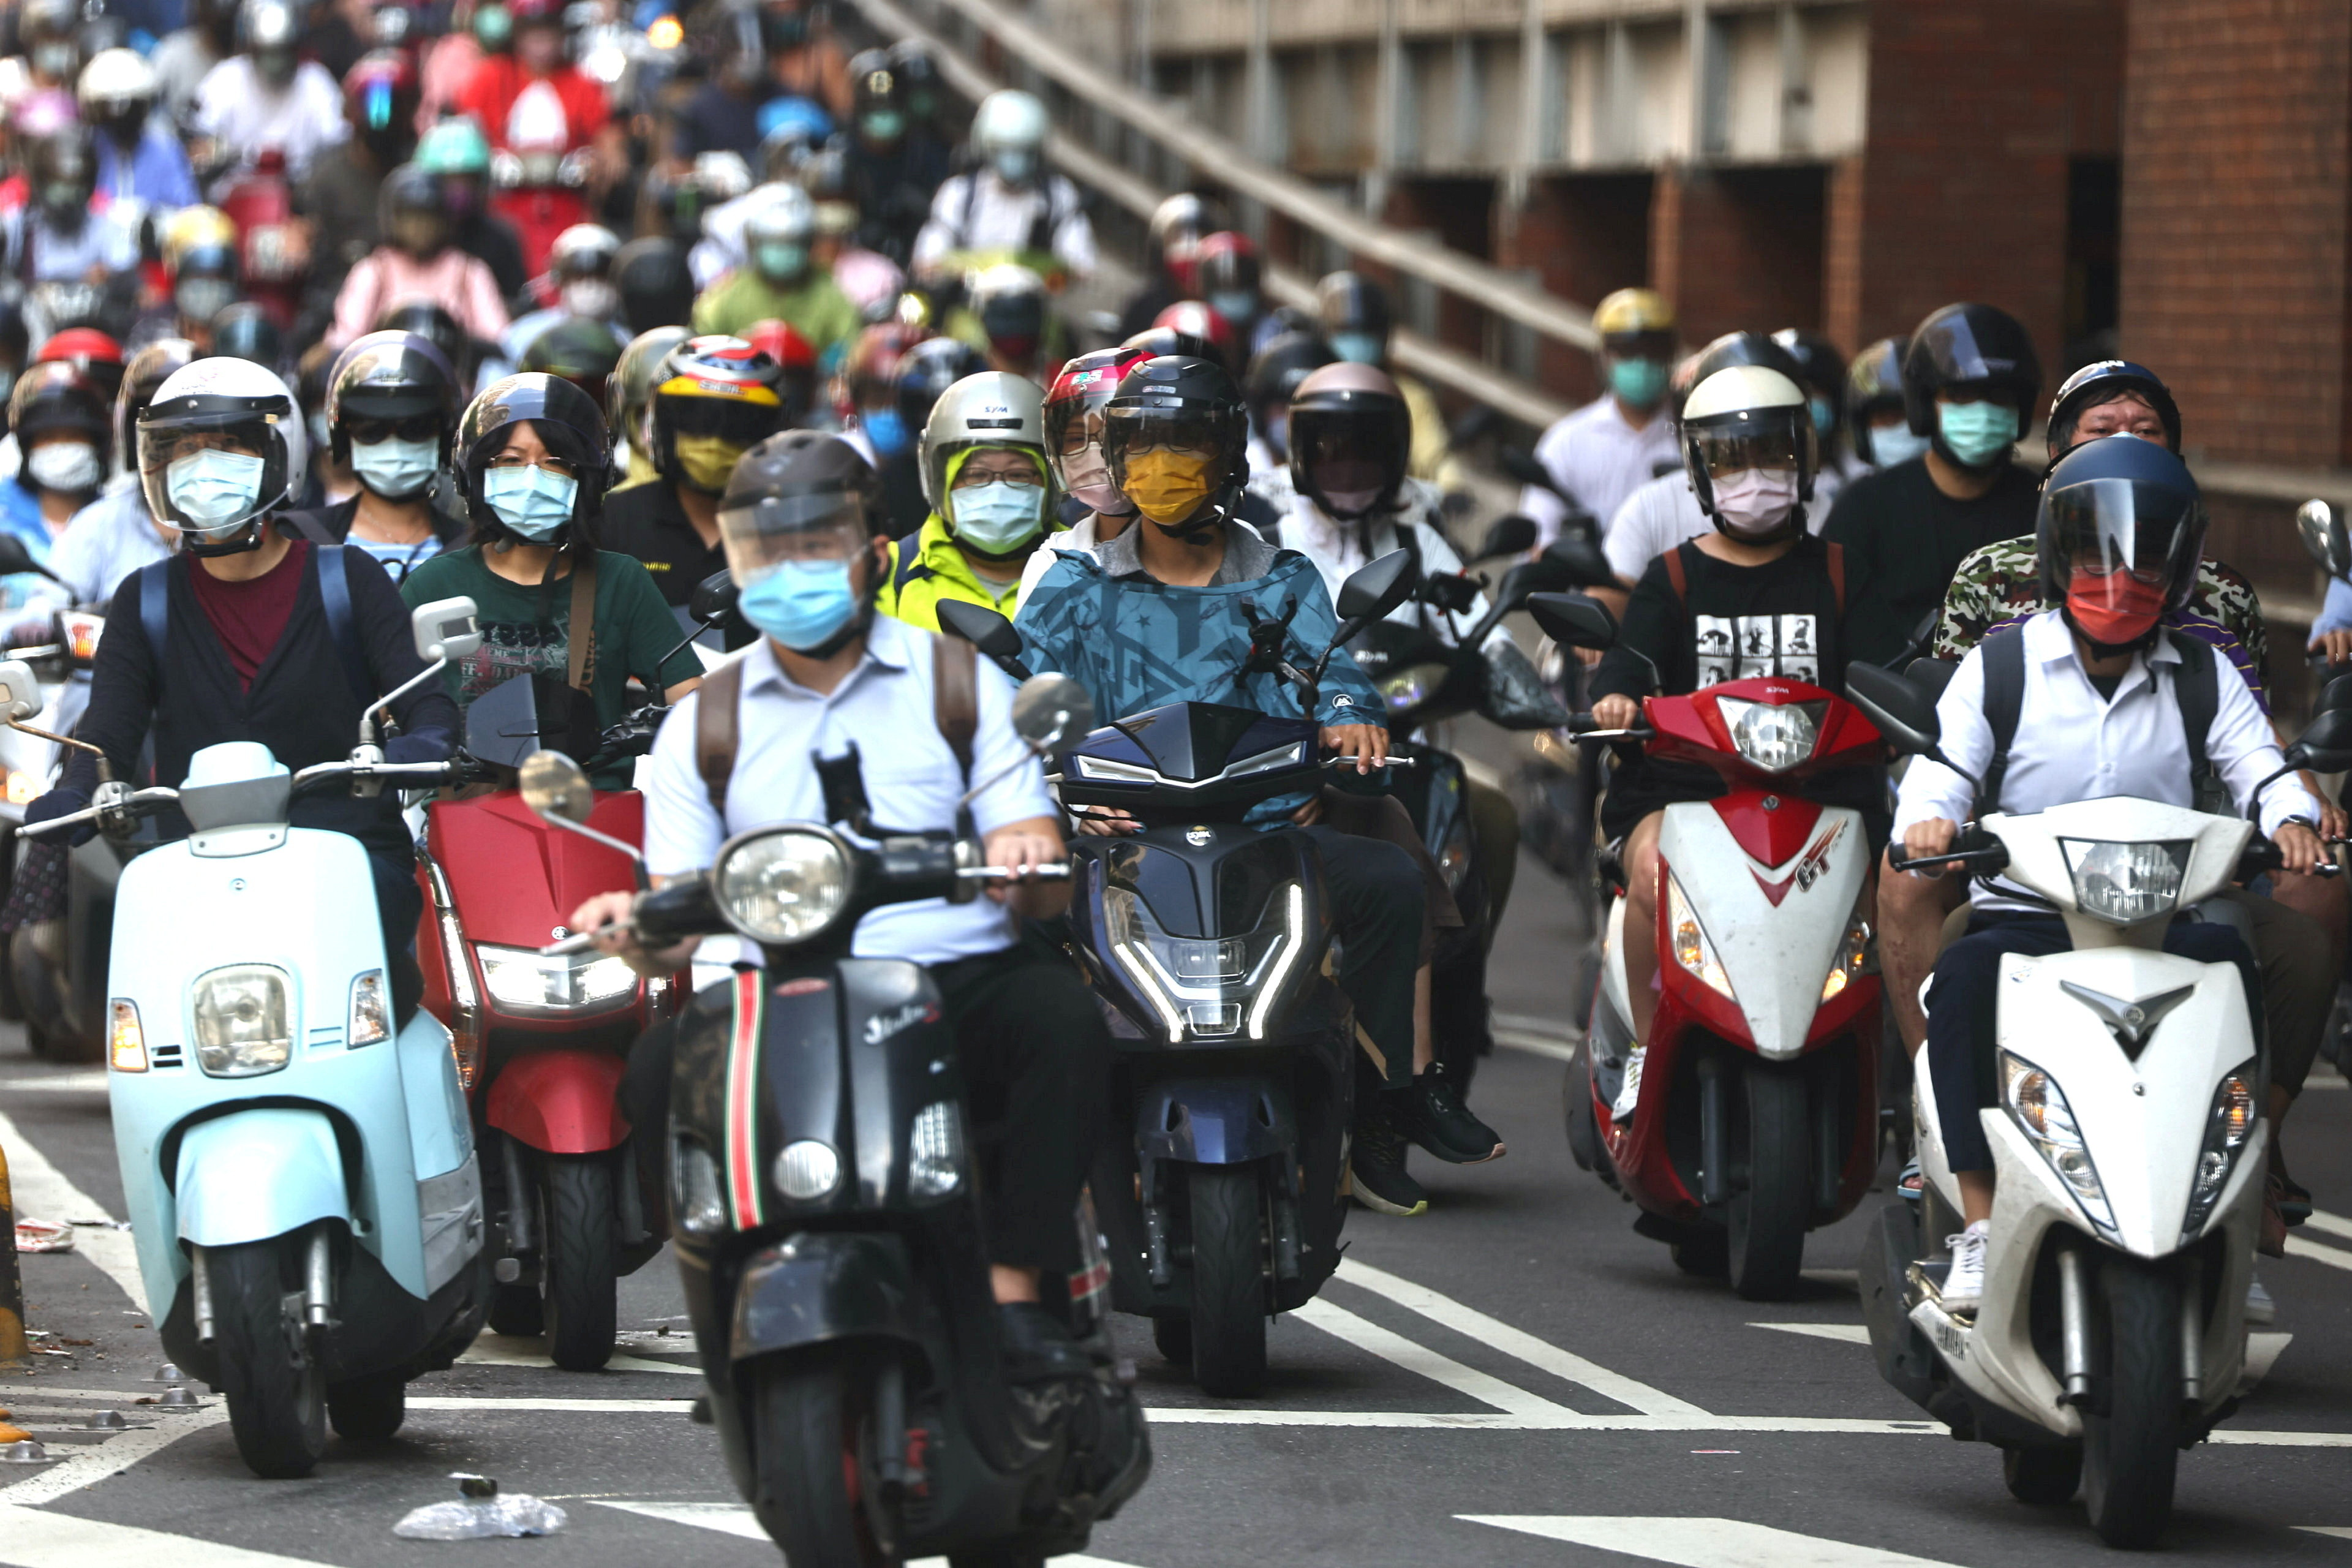 Commuters wear face masks to protect themselves from the coronavirus disease (COVID-19) during morning rush hour after Taiwan Central Epidemic Command Center (CECC) ease up coronavirus disease (COVID-19) Level 3 restrictions in Taipei, Taiwan, July 13, 2021. REUTER/Ann Wang - RC2CJO9UVQOV